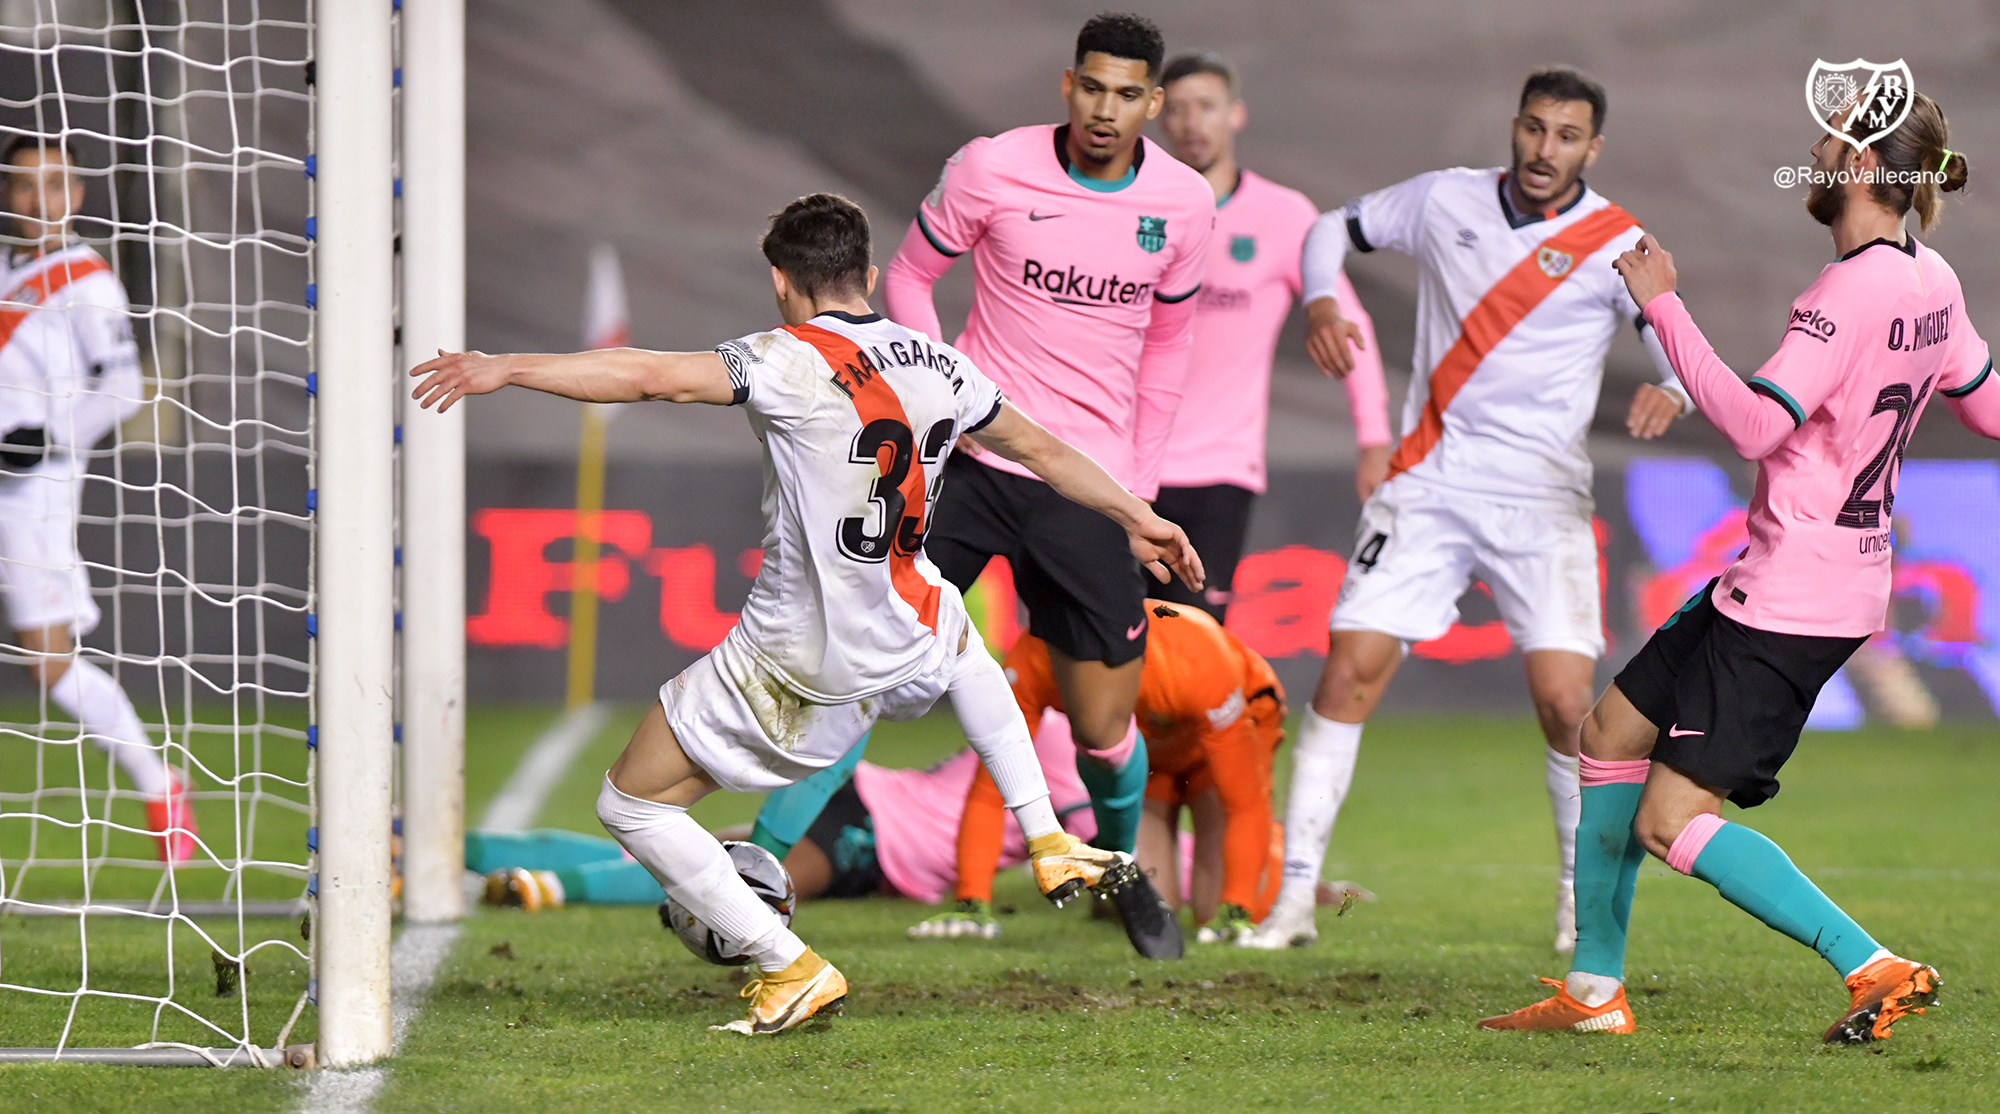 Another matchday, another loss for fc barcelona. Watch Rayo Vallecano Take Shock Second Half Lead Against Barcelona Football Espana